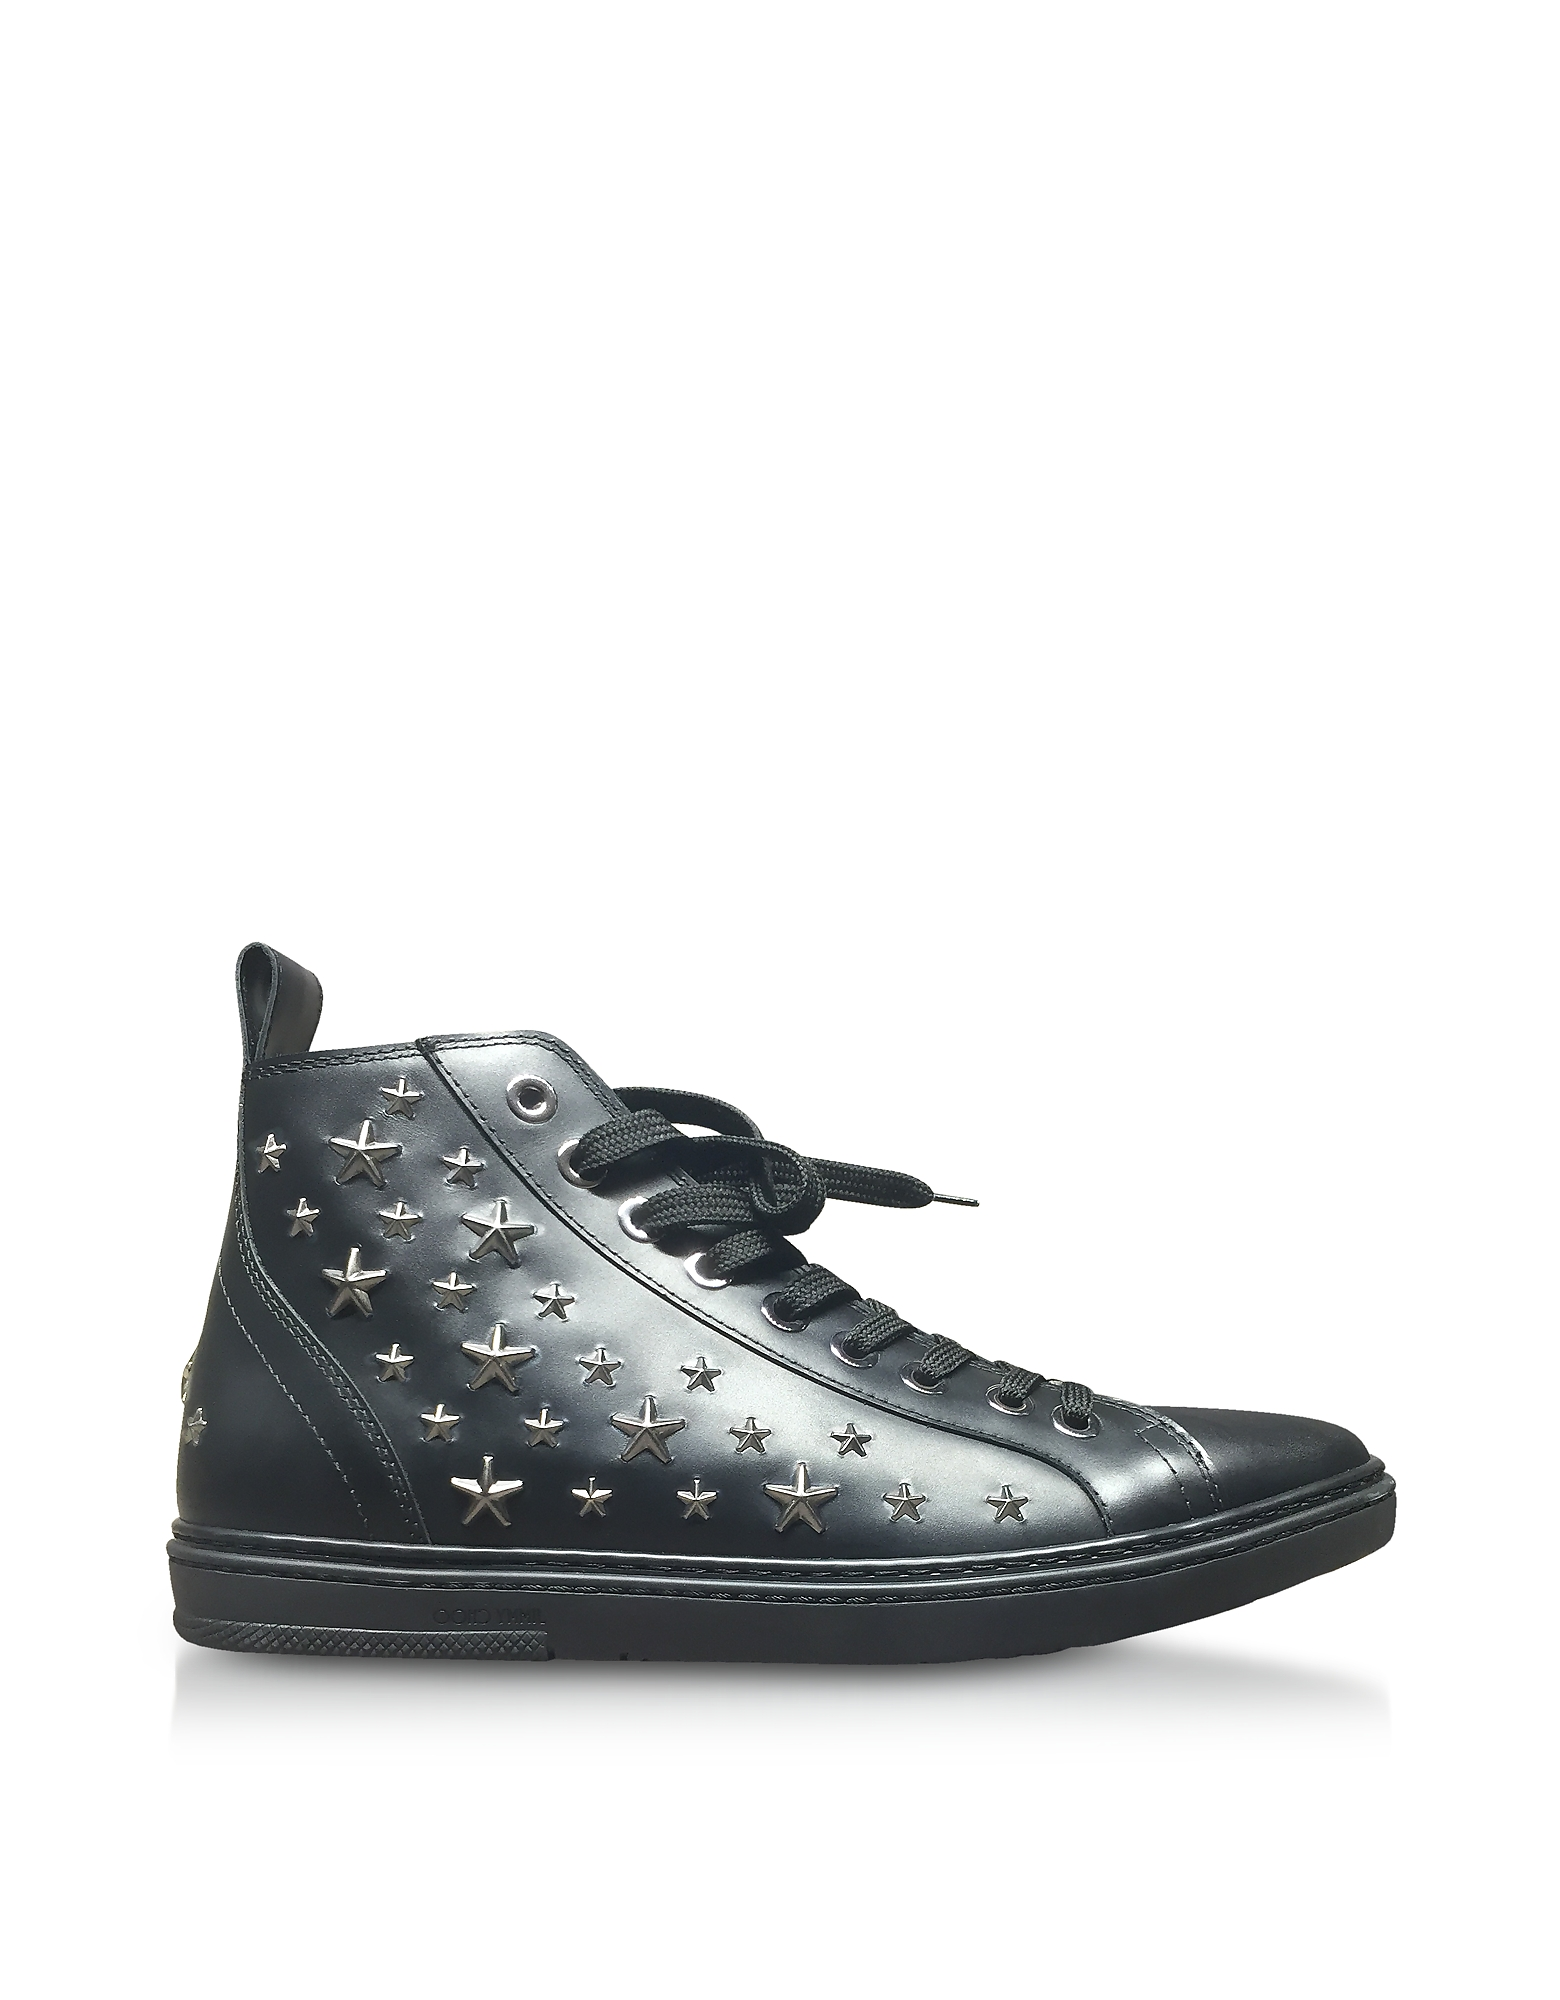 Colt Black Leather Sport High Top Sneakers w/Multi Stars